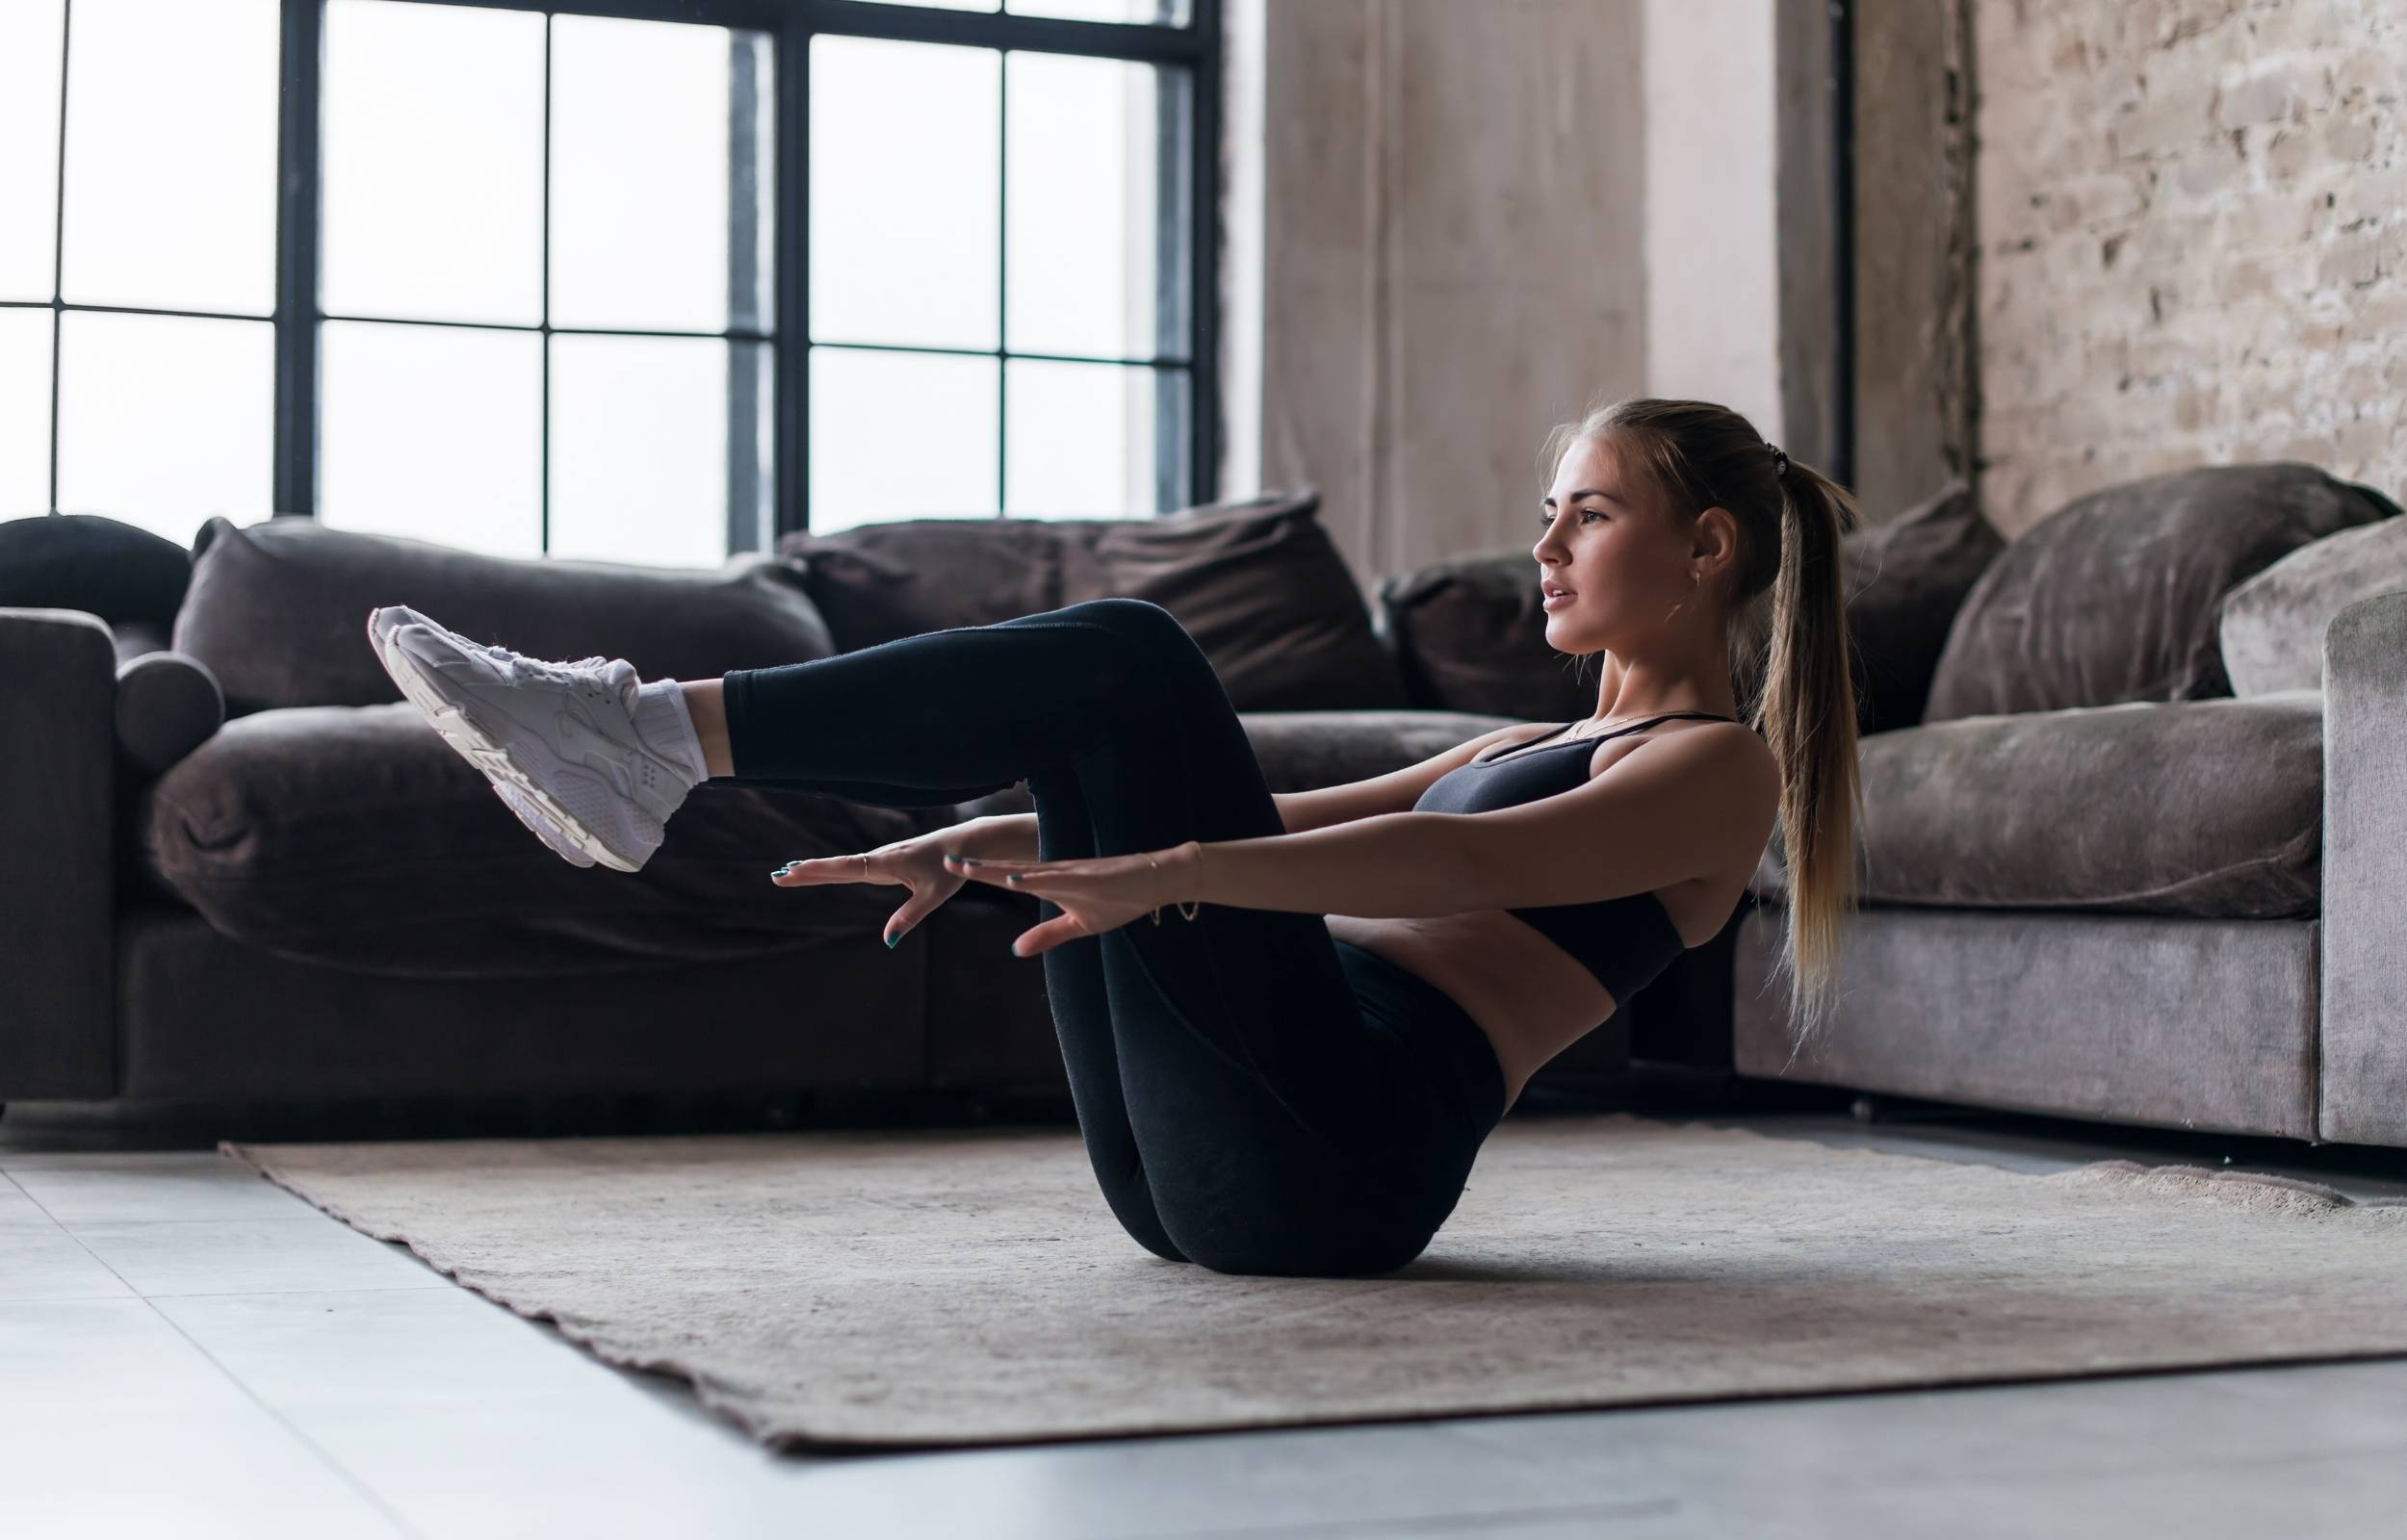 10 Tips for Preventing Injuries While Working Out at Home 1